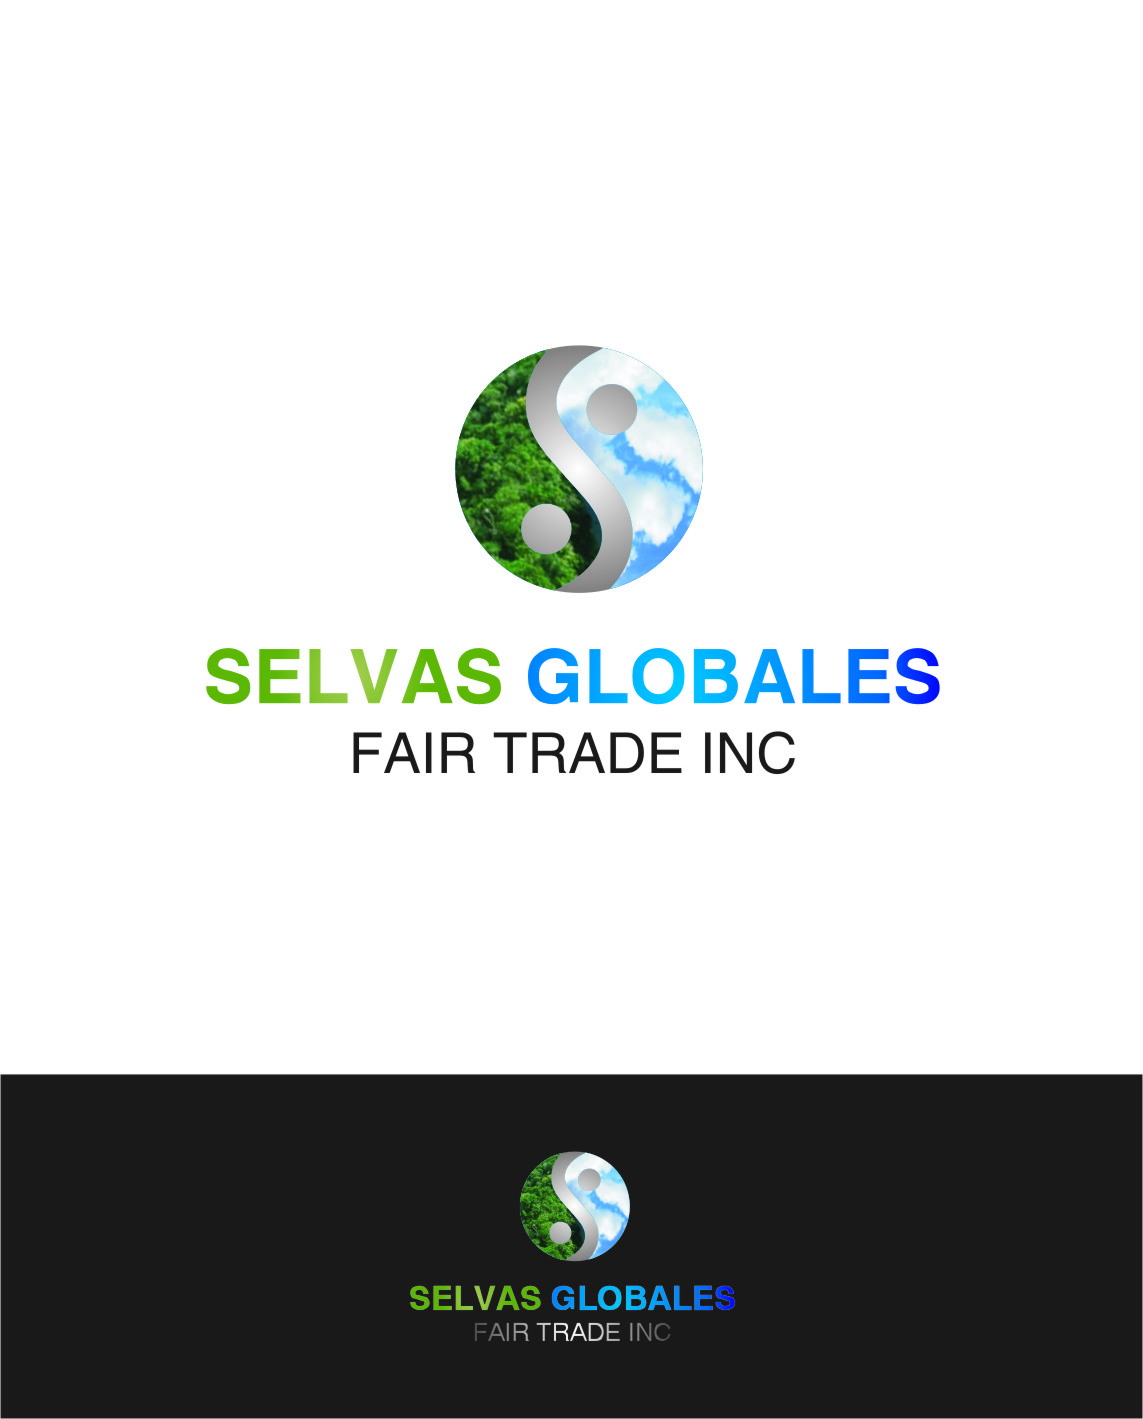 Logo Design by Ngepet_art - Entry No. 143 in the Logo Design Contest Captivating Logo Design for Selvas Globales Fair Trade Inc..